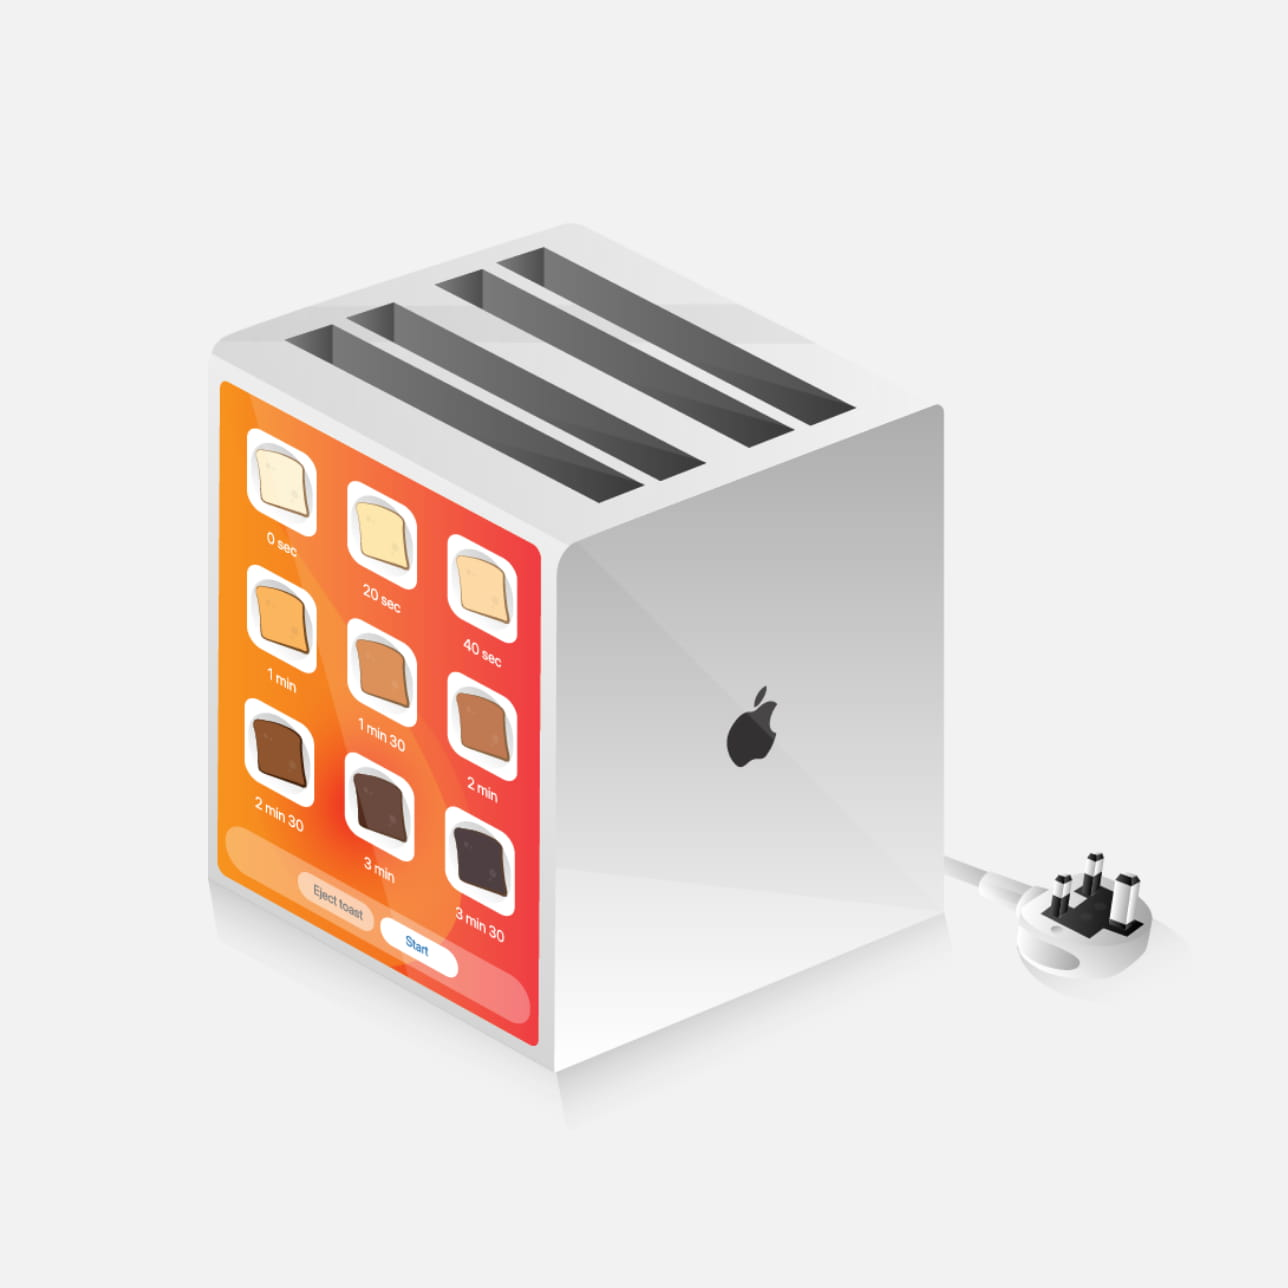 amy-jones-apple-concept-collection-touchscreen-toaster-cropped@2x